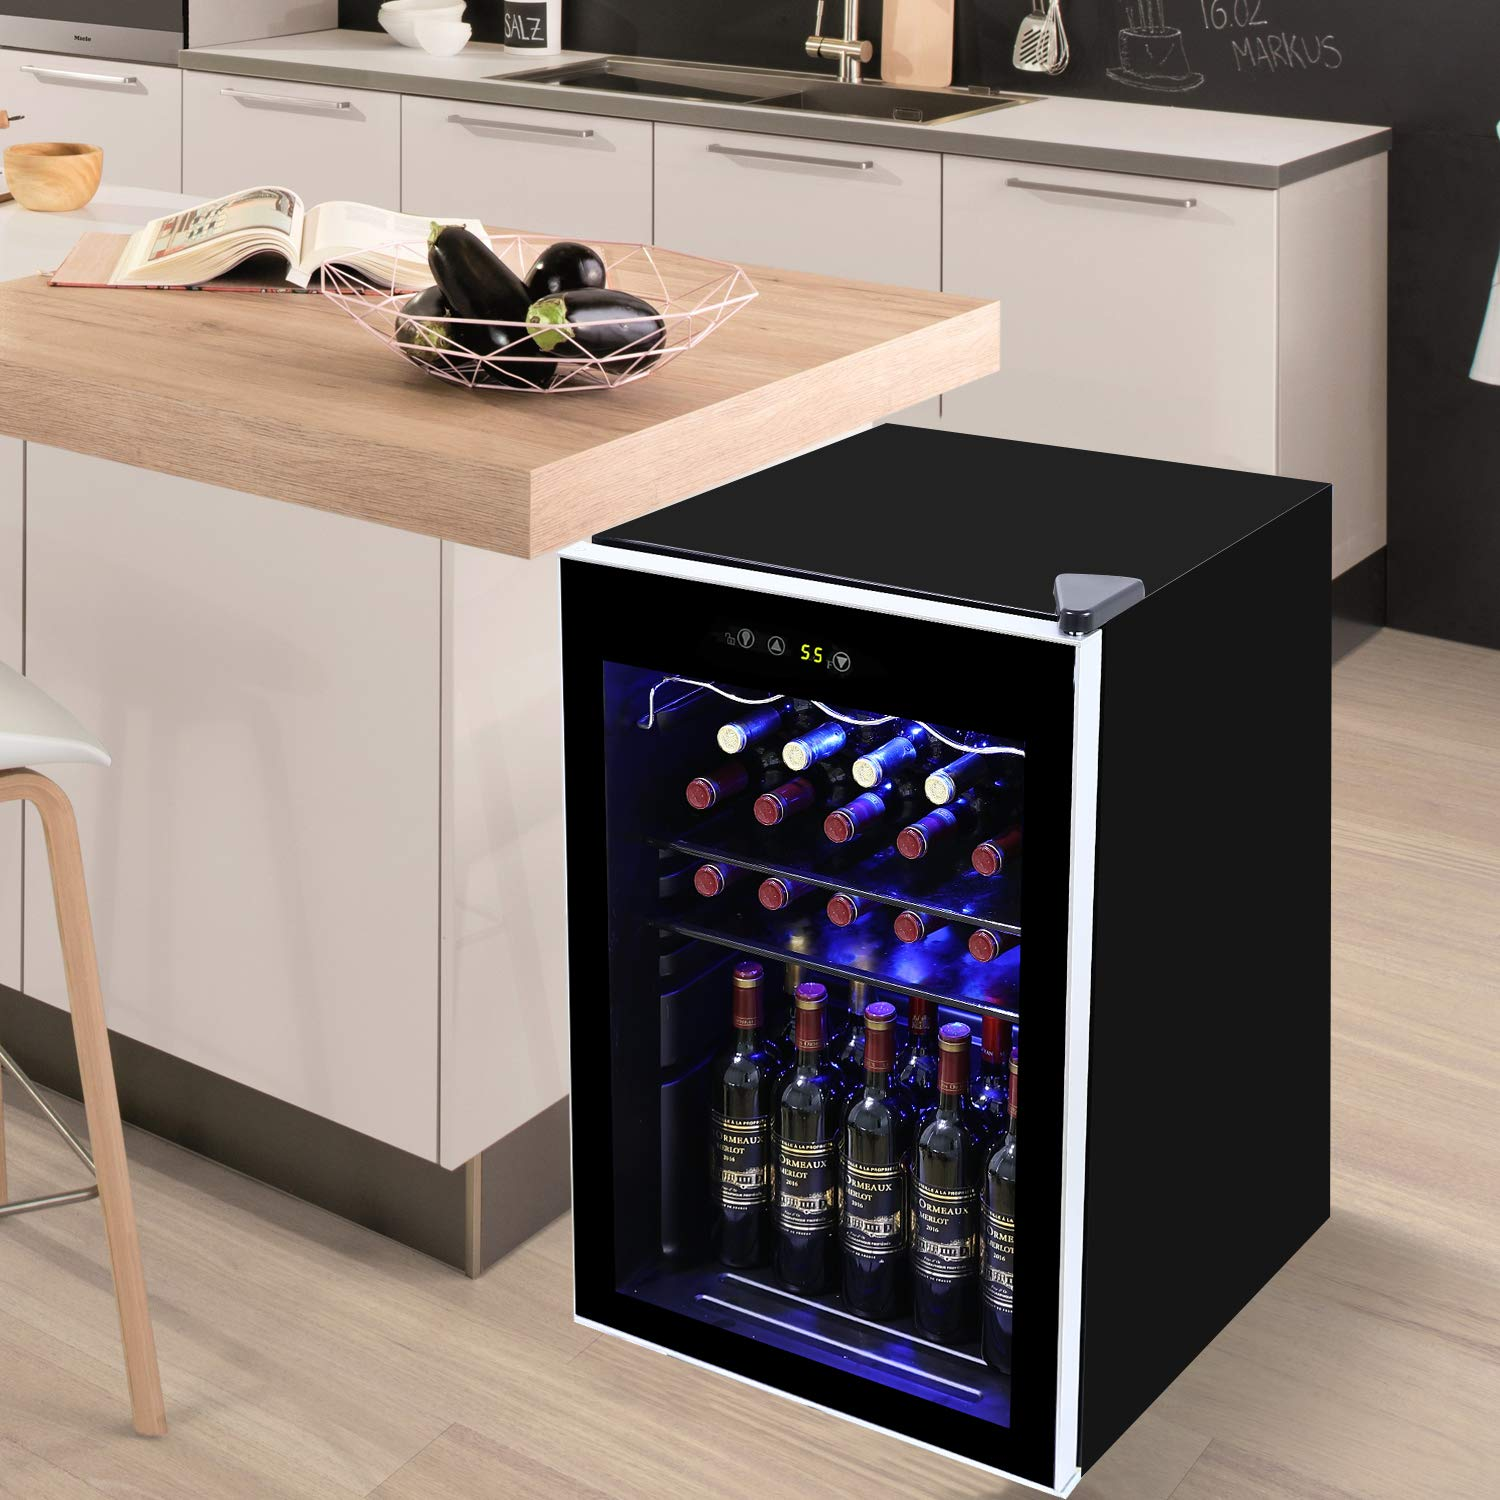 Tavata Wine Cooler- Freestanding Single Zone Fridge and Cellar Chiller, Quiet Wine Refrigerator with UV Protection Glass Door,Compressor Refrigeration for Counter Top  (37 Bottles)